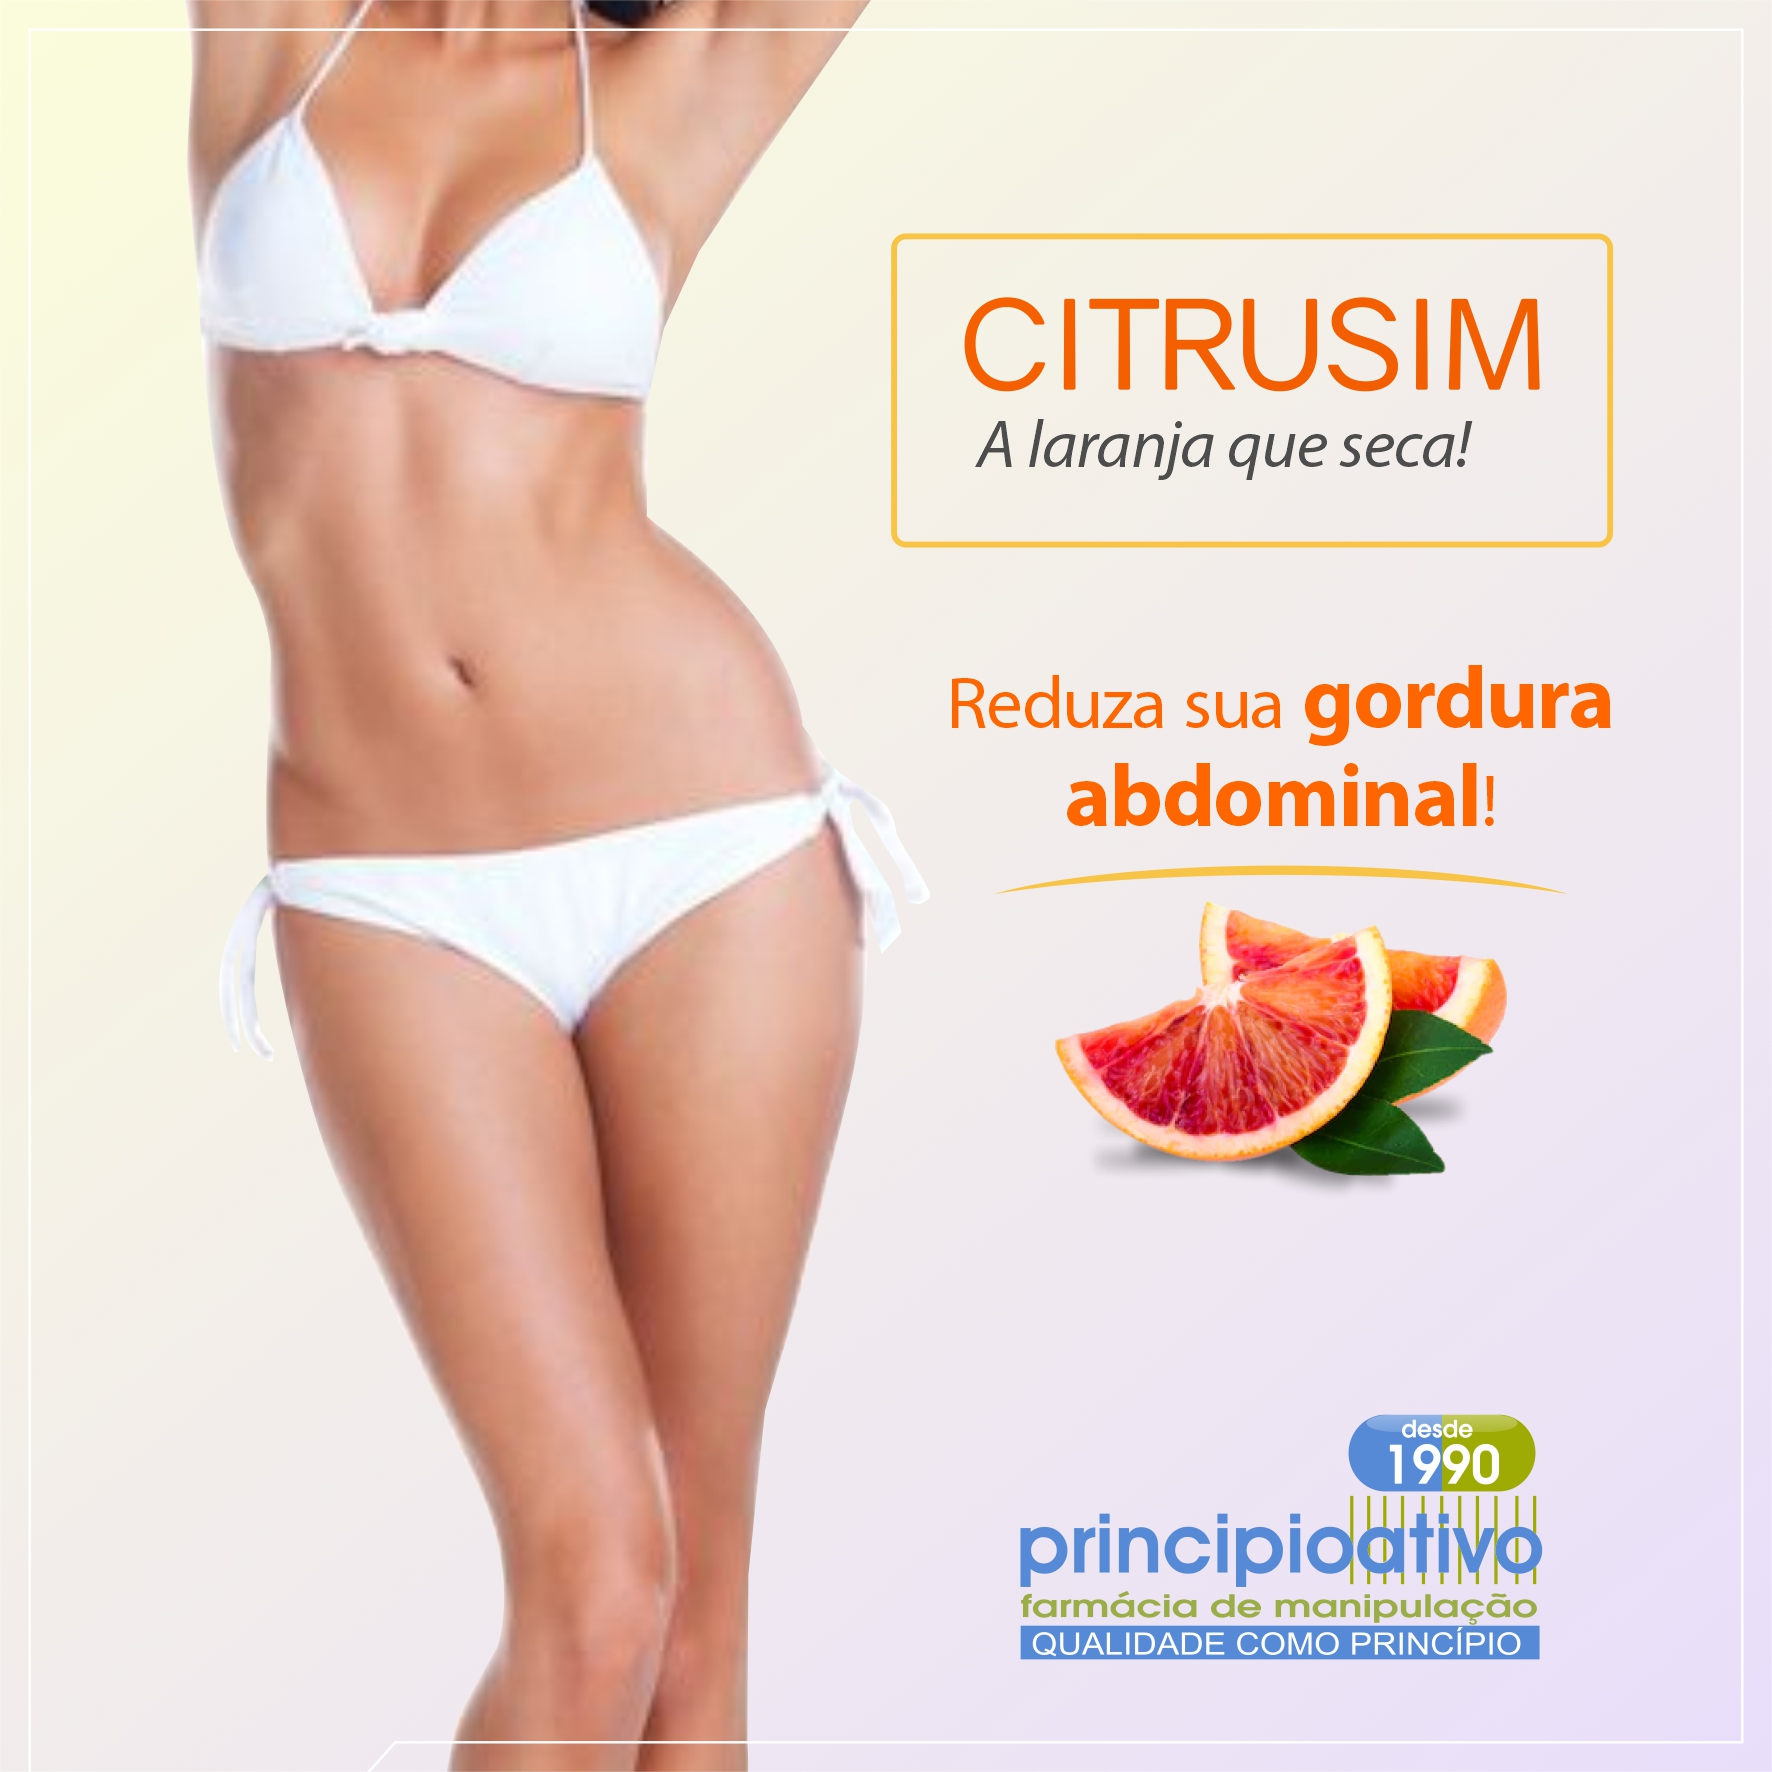 Citrusim